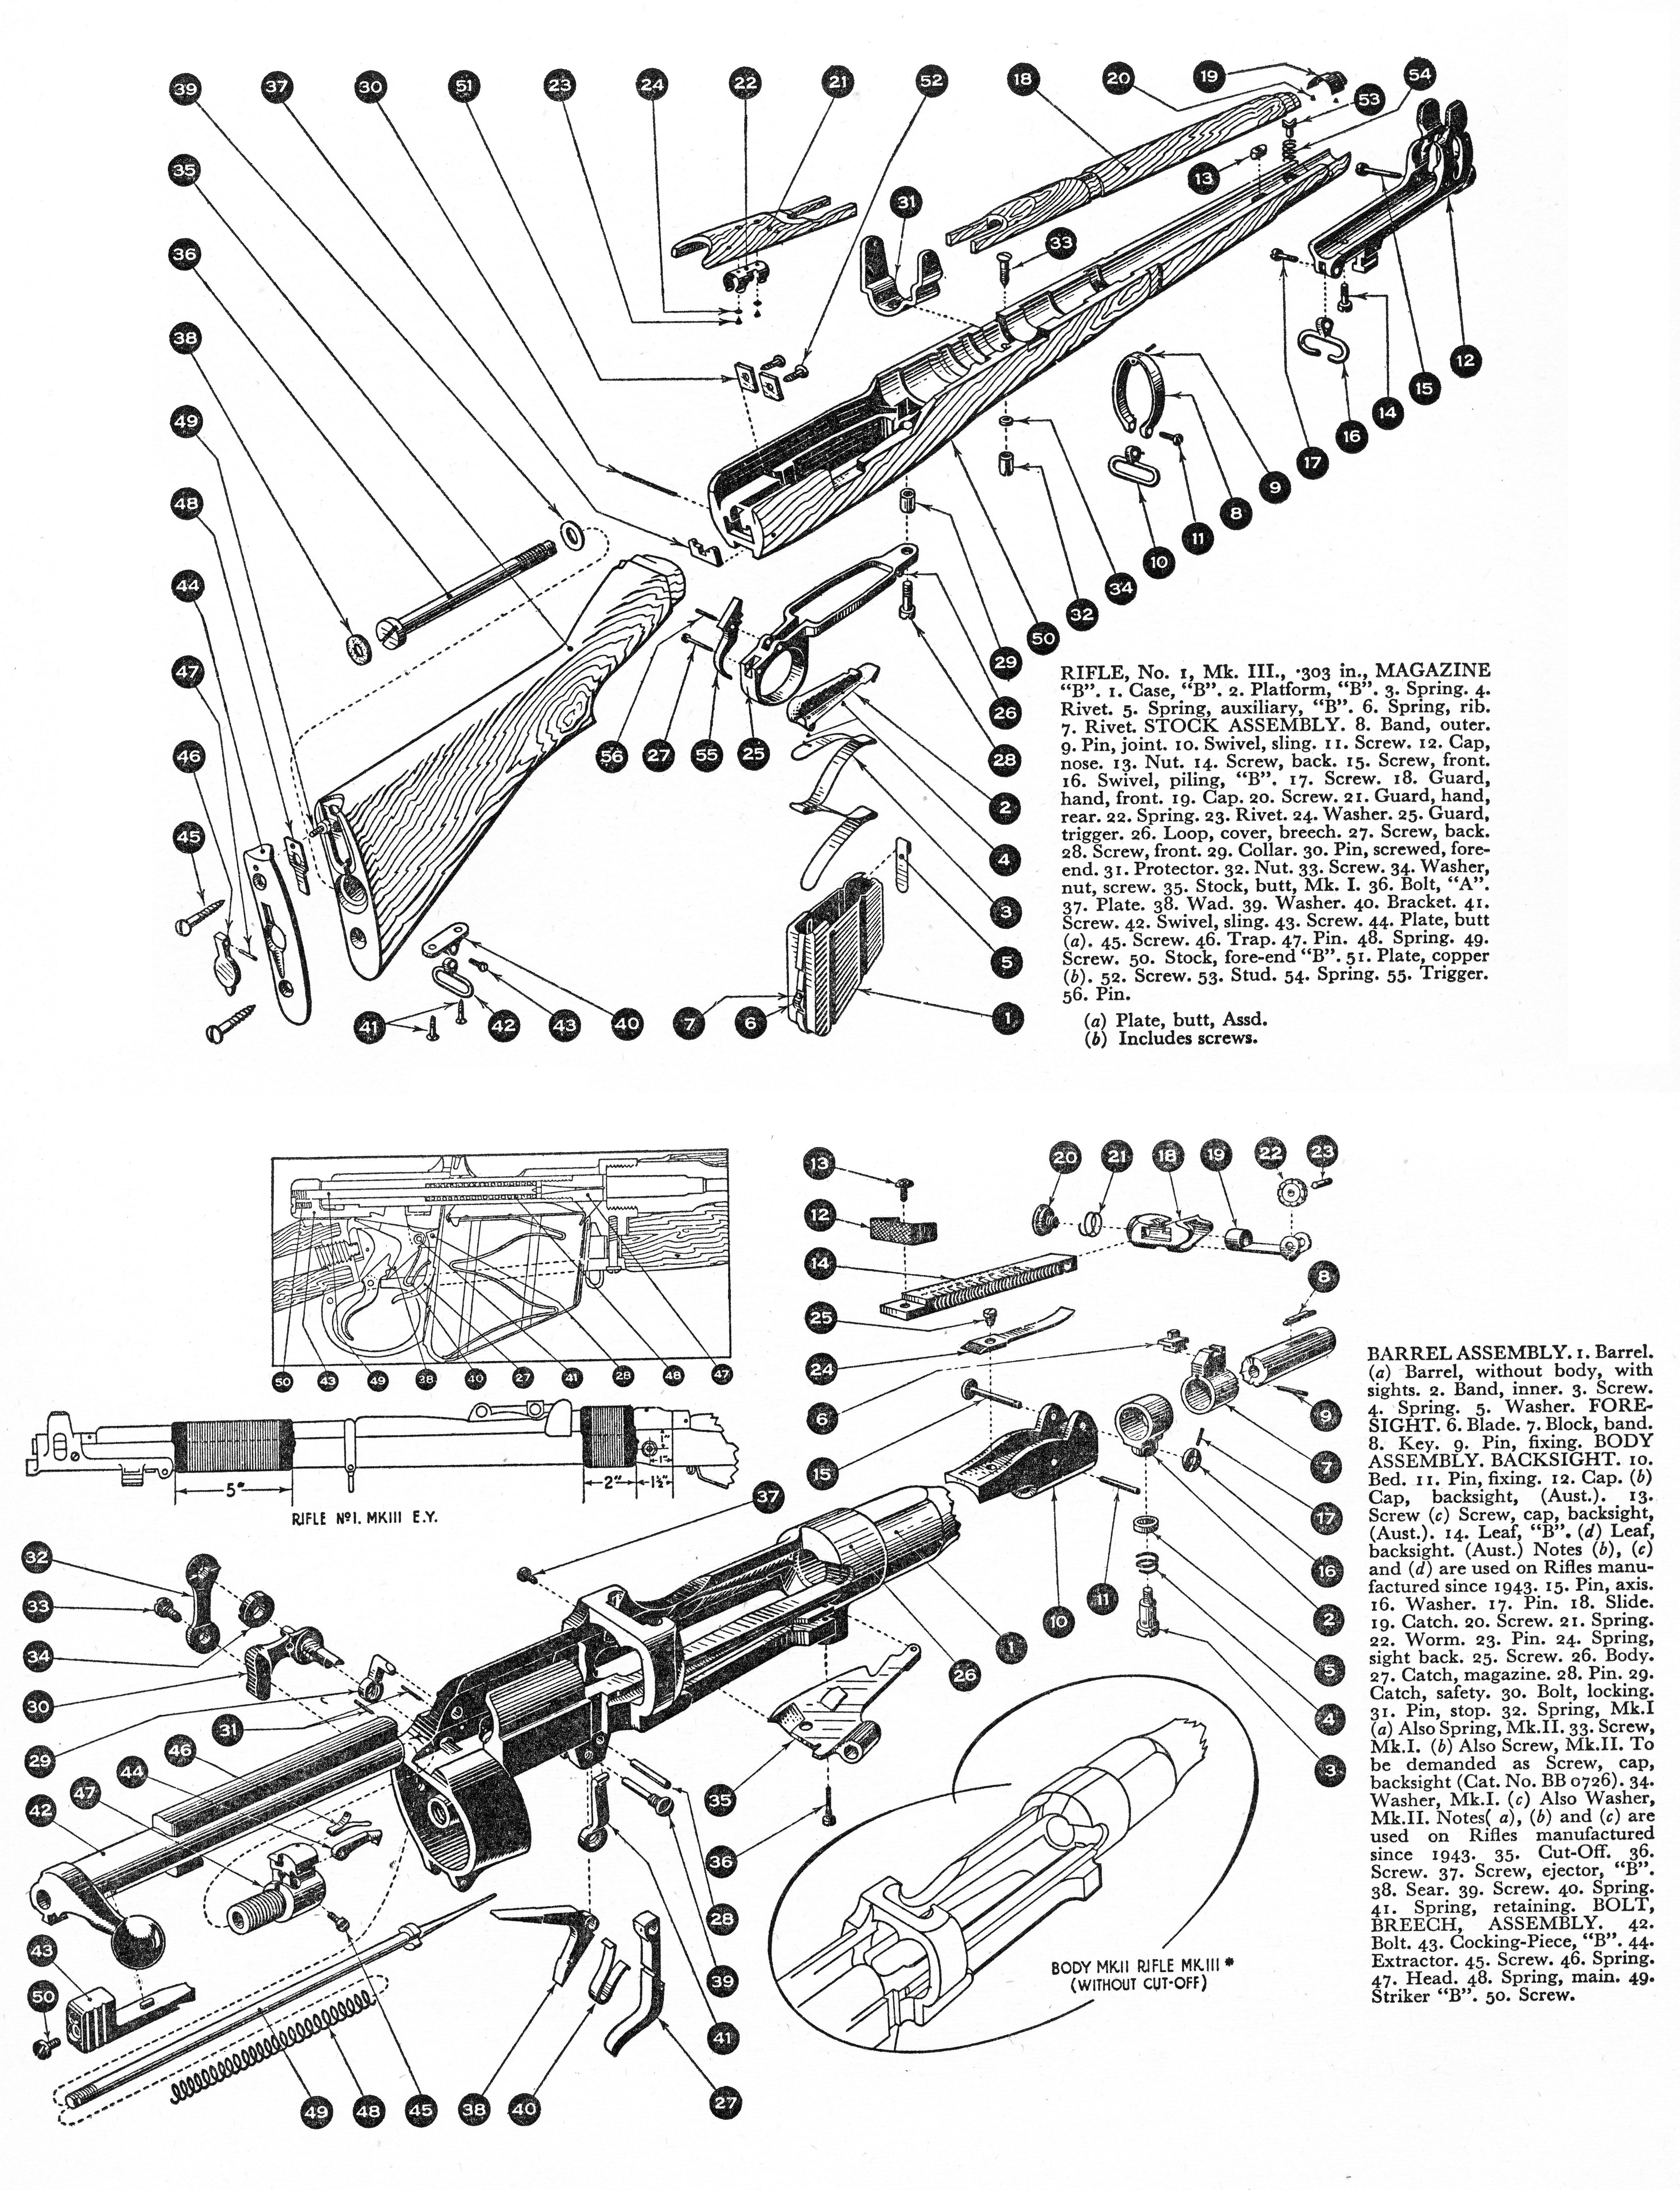 medium resolution of detailed parts diagram of rifle no 1 mkiii smle 303in with cut off